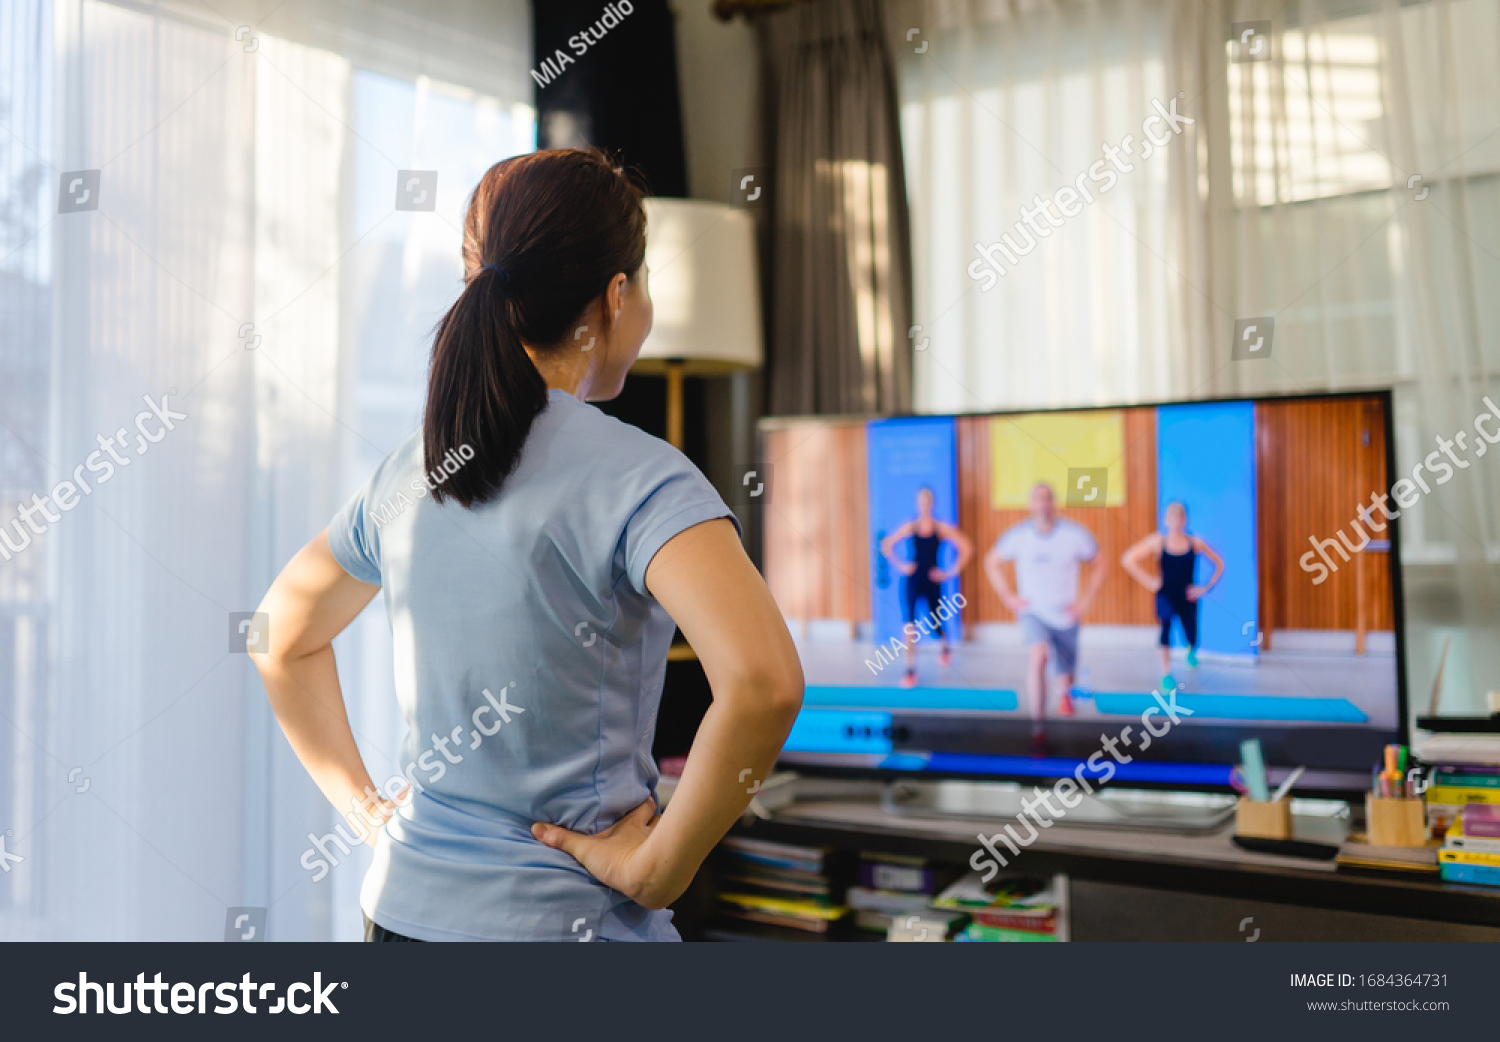 Video streaming Stay home.home fitness workout class live streaming online.Asian woman doing strength training cardio aerobic dance exercises watching videos on a smart tv in the living room at home. #1684364731